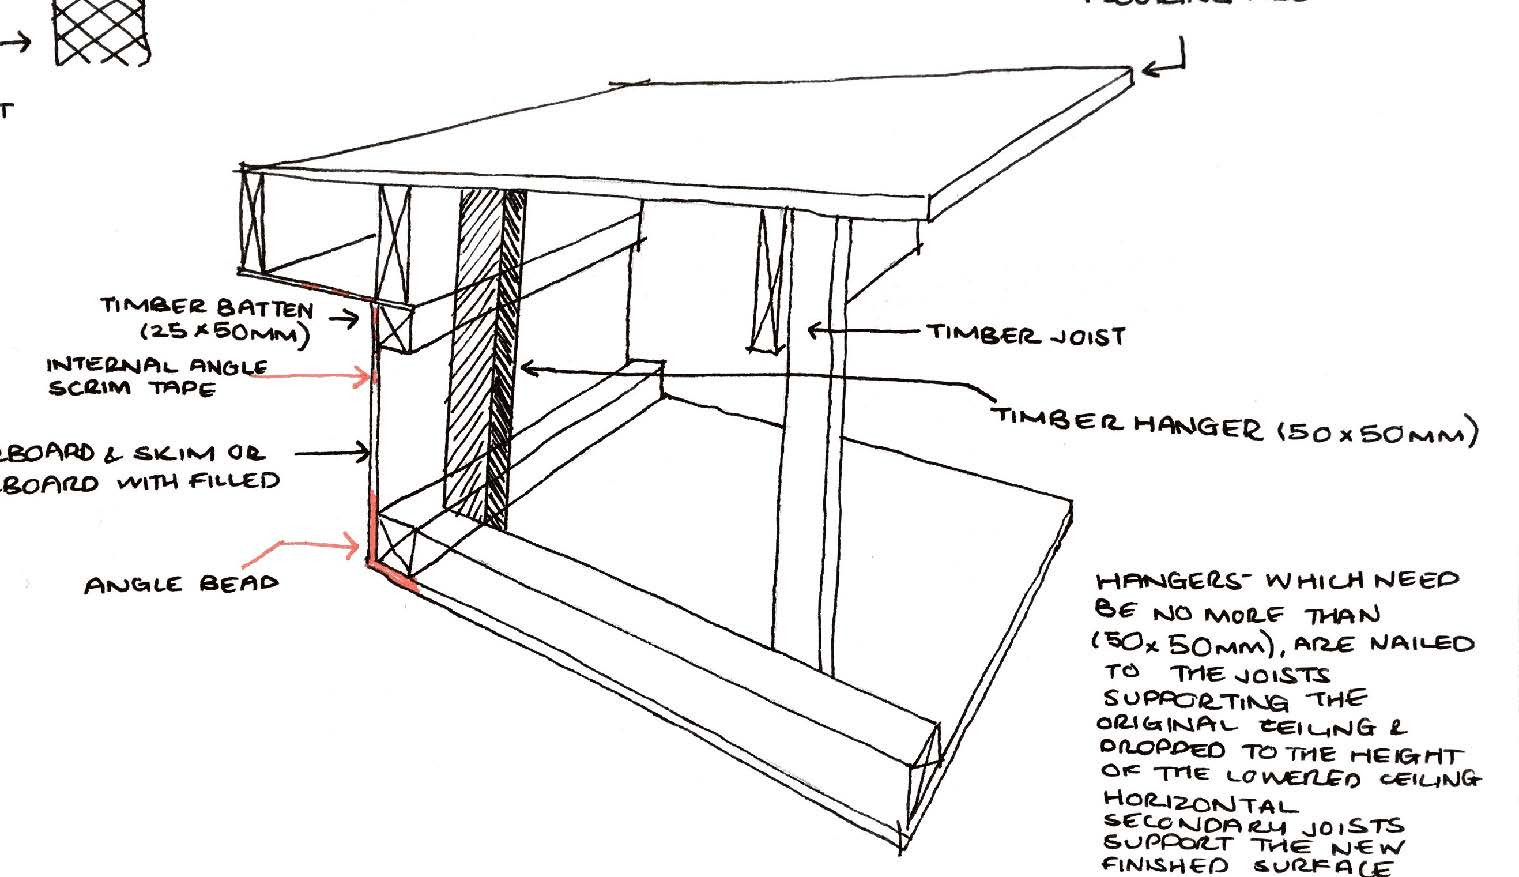 Structure of a Suspended Ceiling